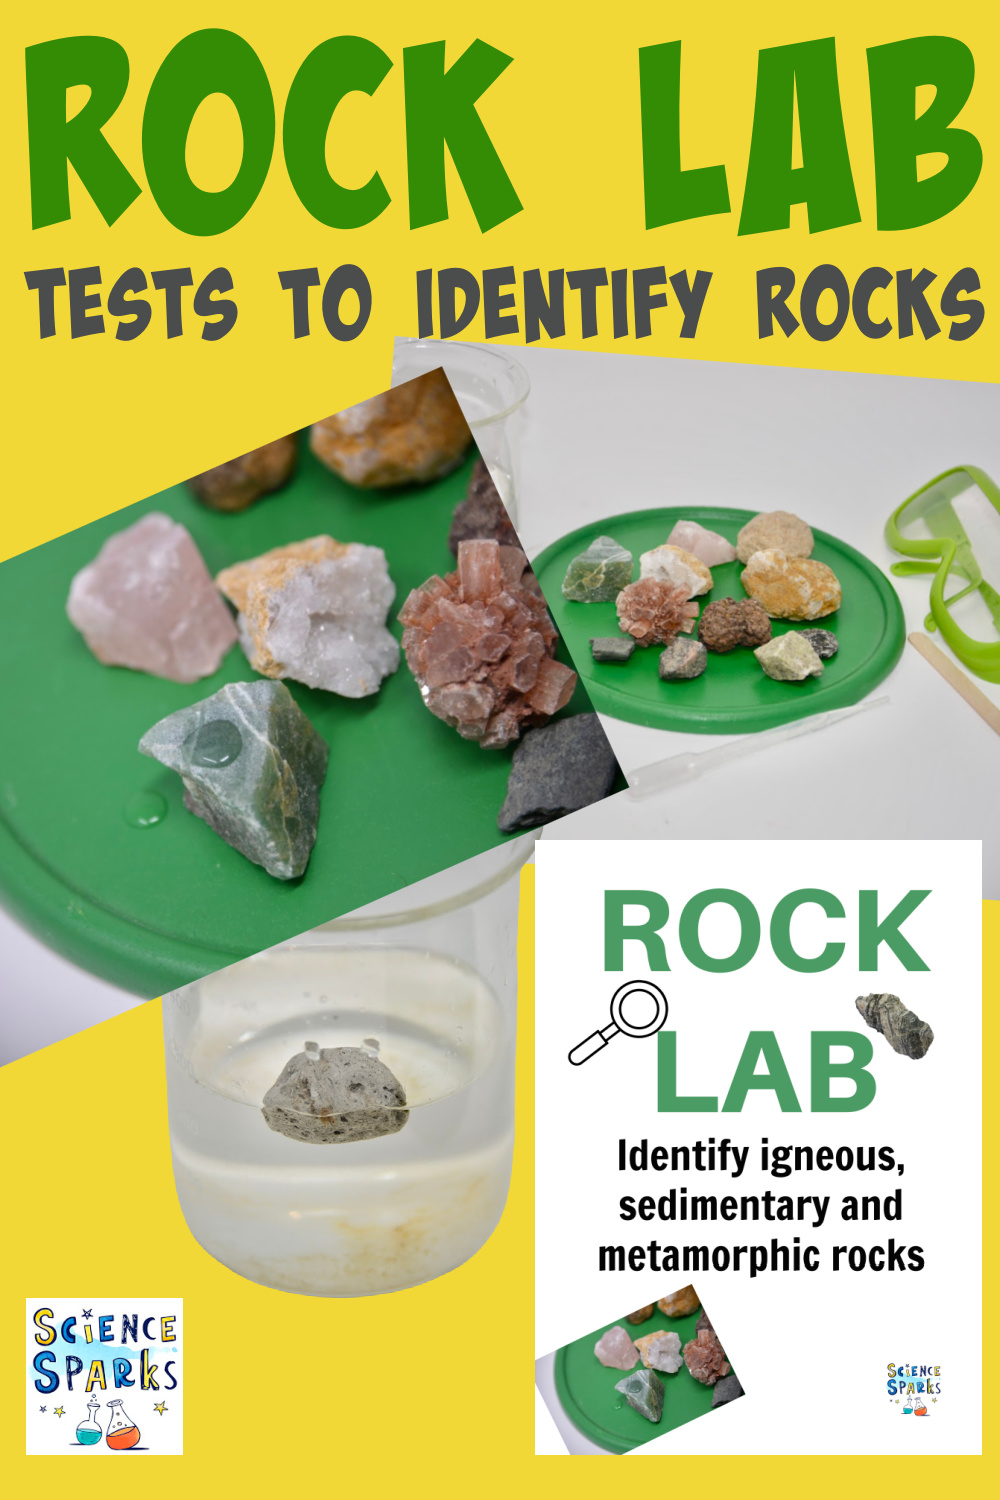 Collage of rocks and tests used to identify different types of rocks